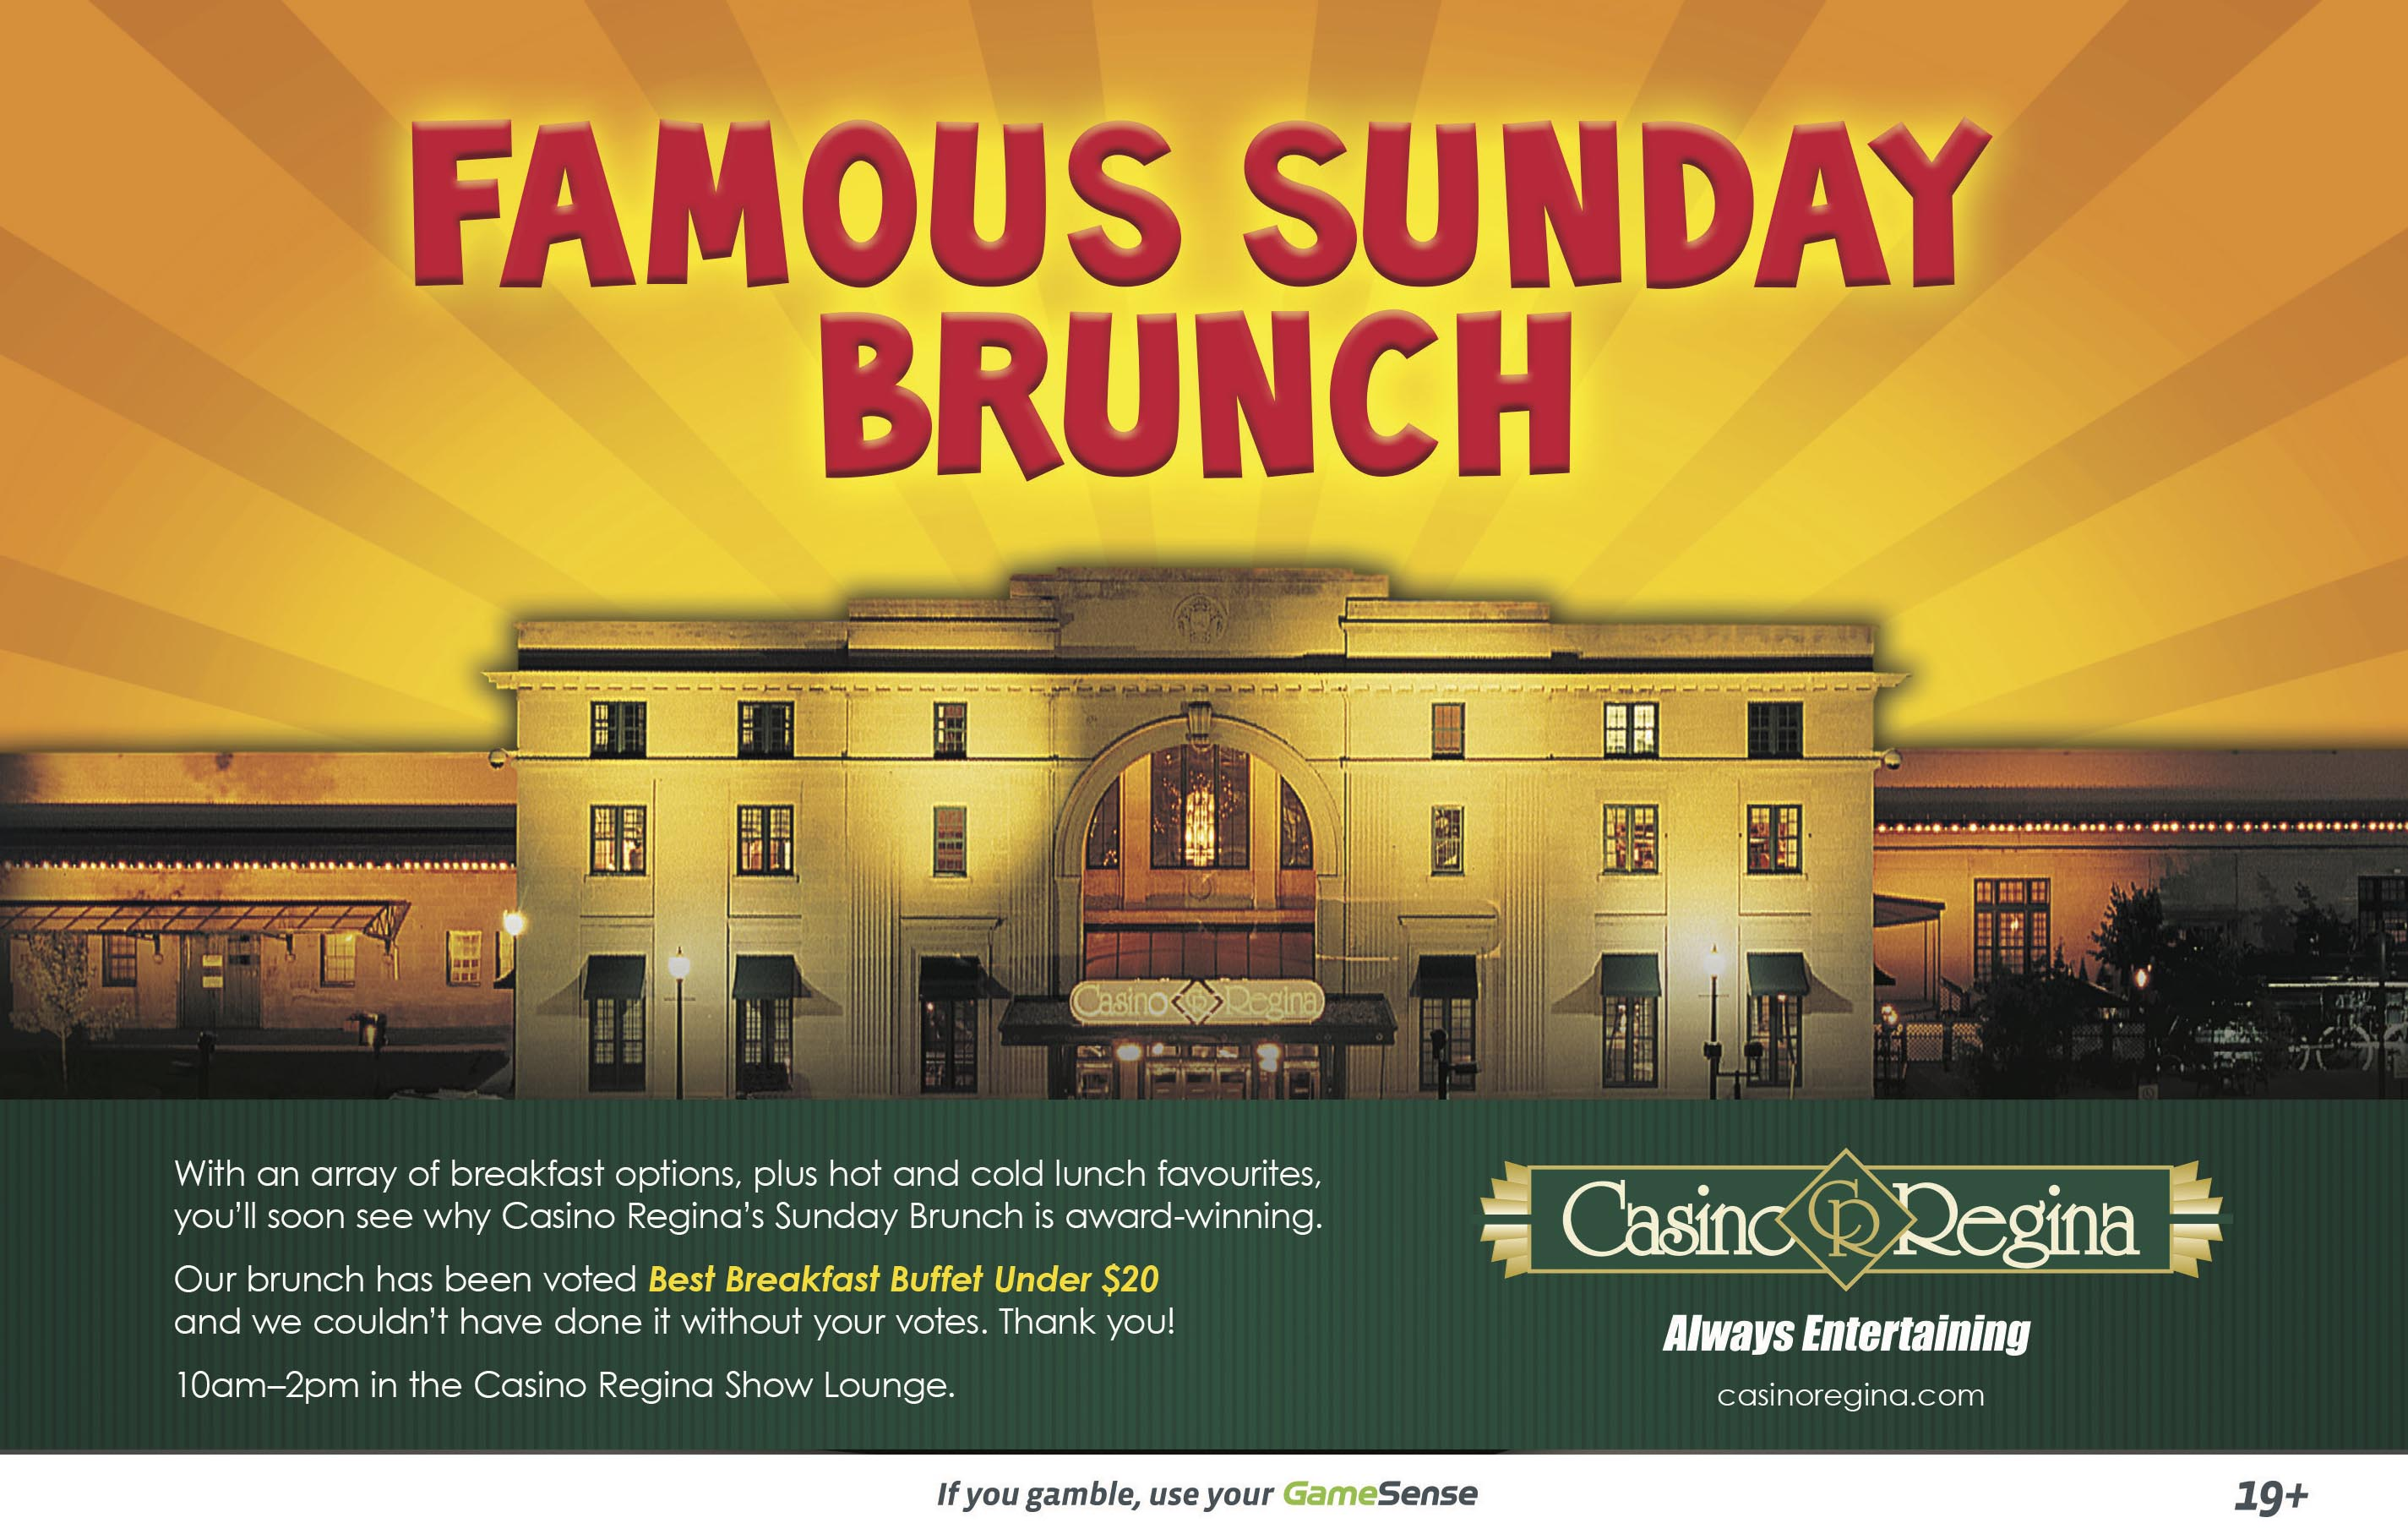 Starlight casino sunday brunch